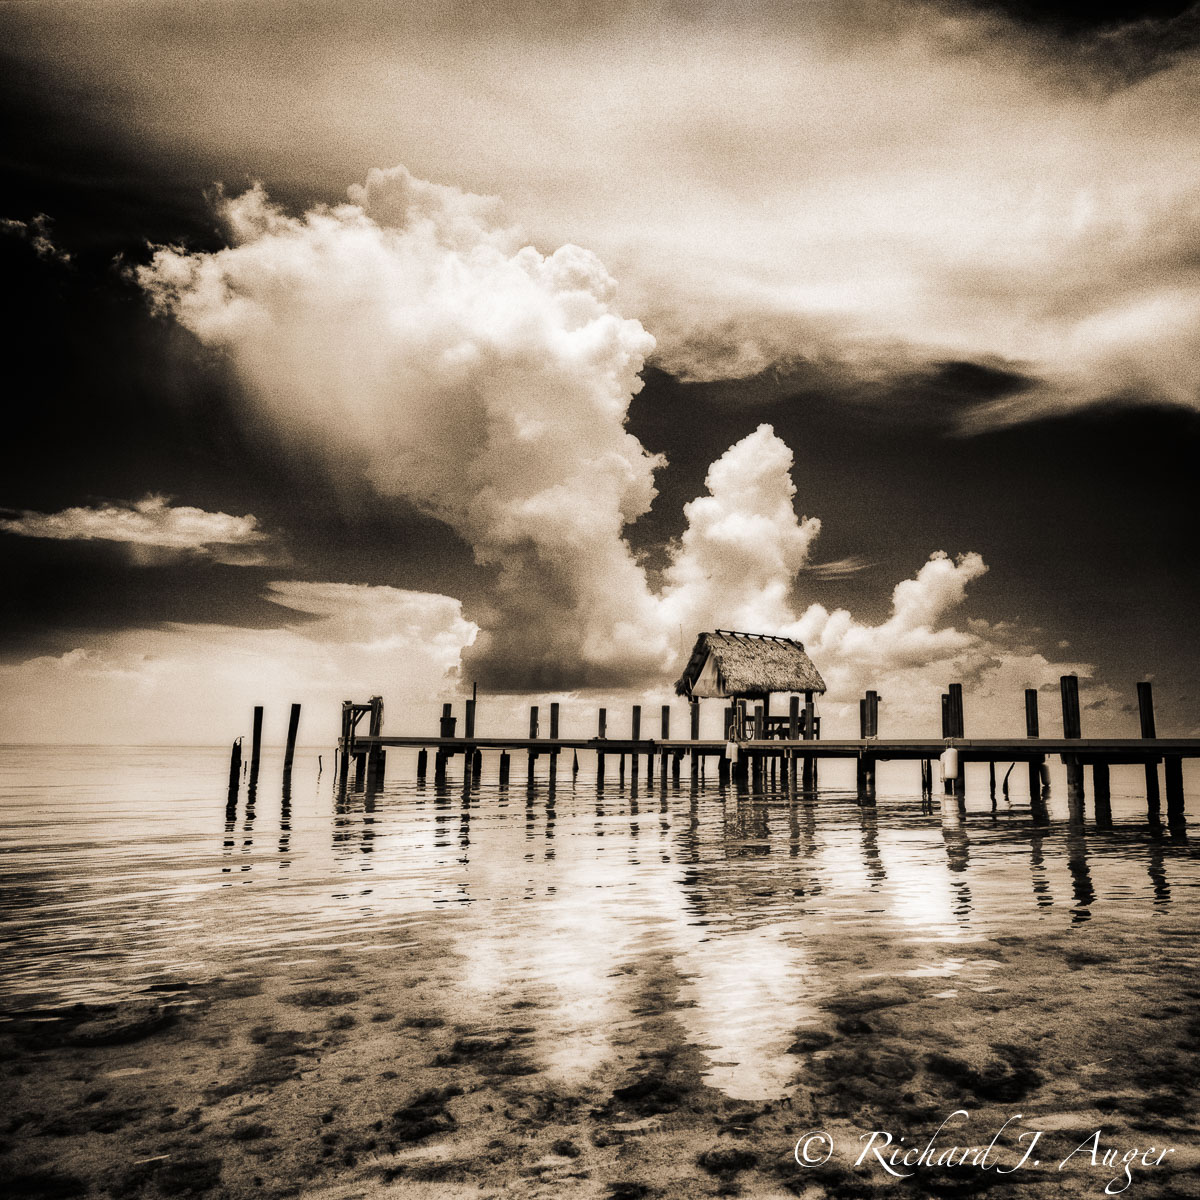 Pigeon Key, Florida Keys, Overseas Highway, Dock, Shack, Clouds, Storm, Film, Sepia, Landscape, Monochrome